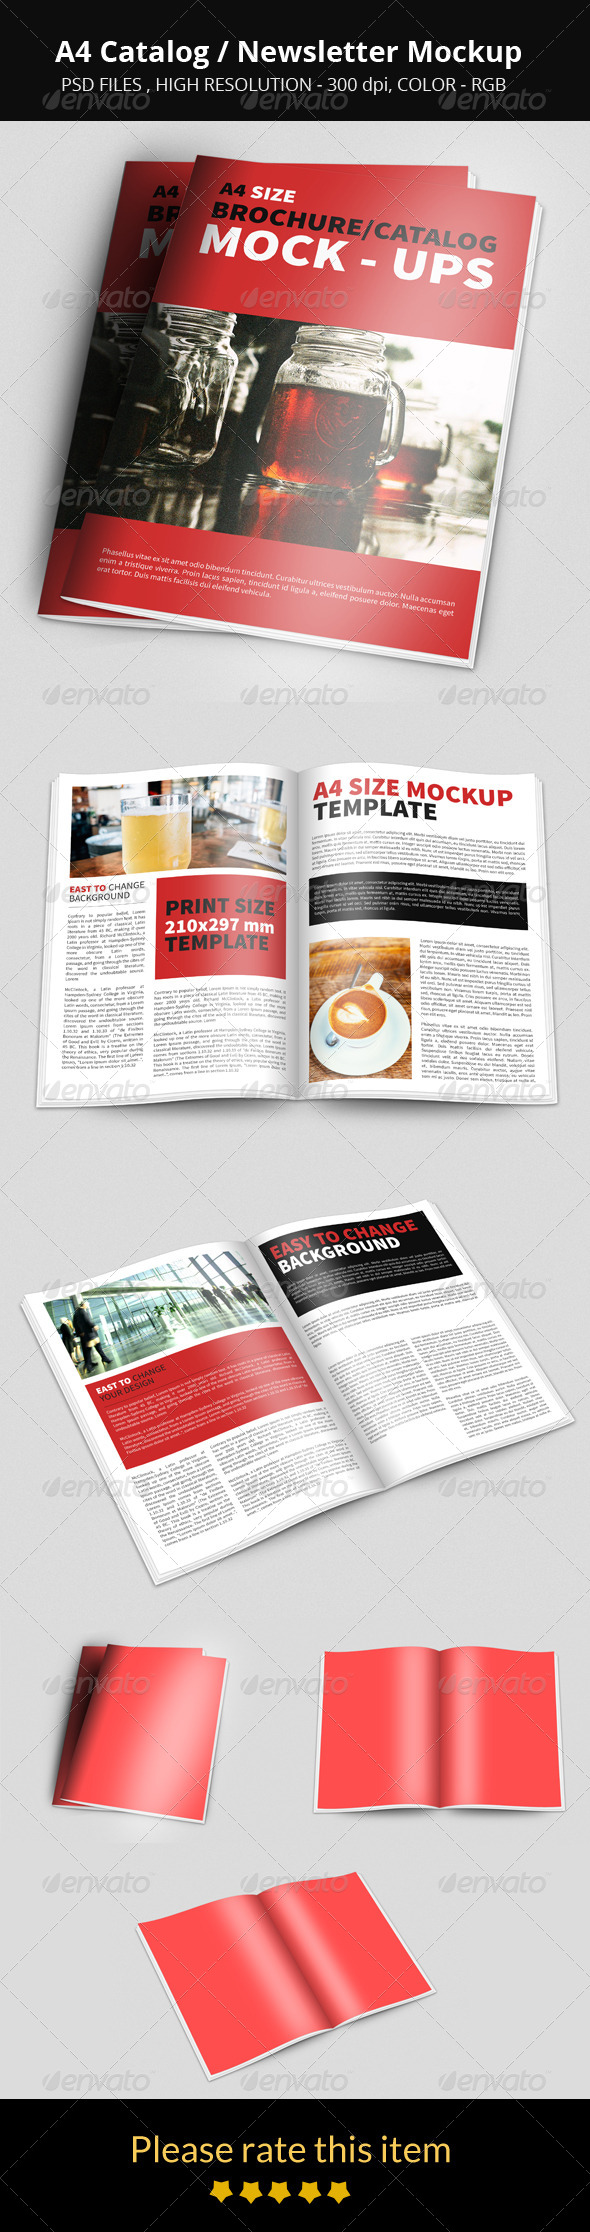 GraphicRiver A4 Catalog Newsletter Mockup 8736854